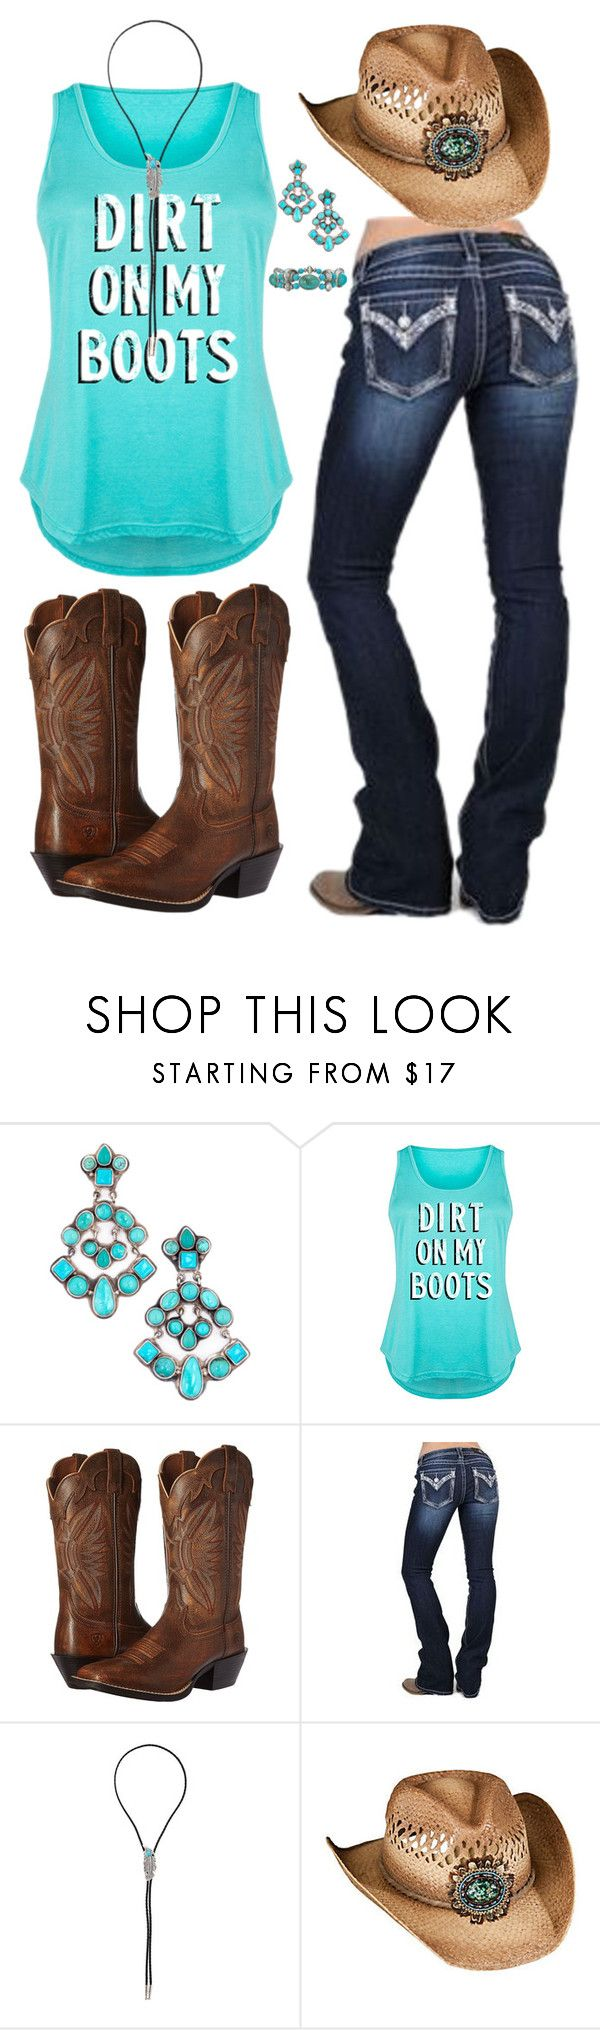 """""""Got a little dirt on my boots..."""" by haybelle0207 ❤ liked on Polyvore featuring LC Trendz, Ariat, Miss Me, M&F Western, Overland Sheepskin Co., Avon, Boots, western and plus size clothing"""